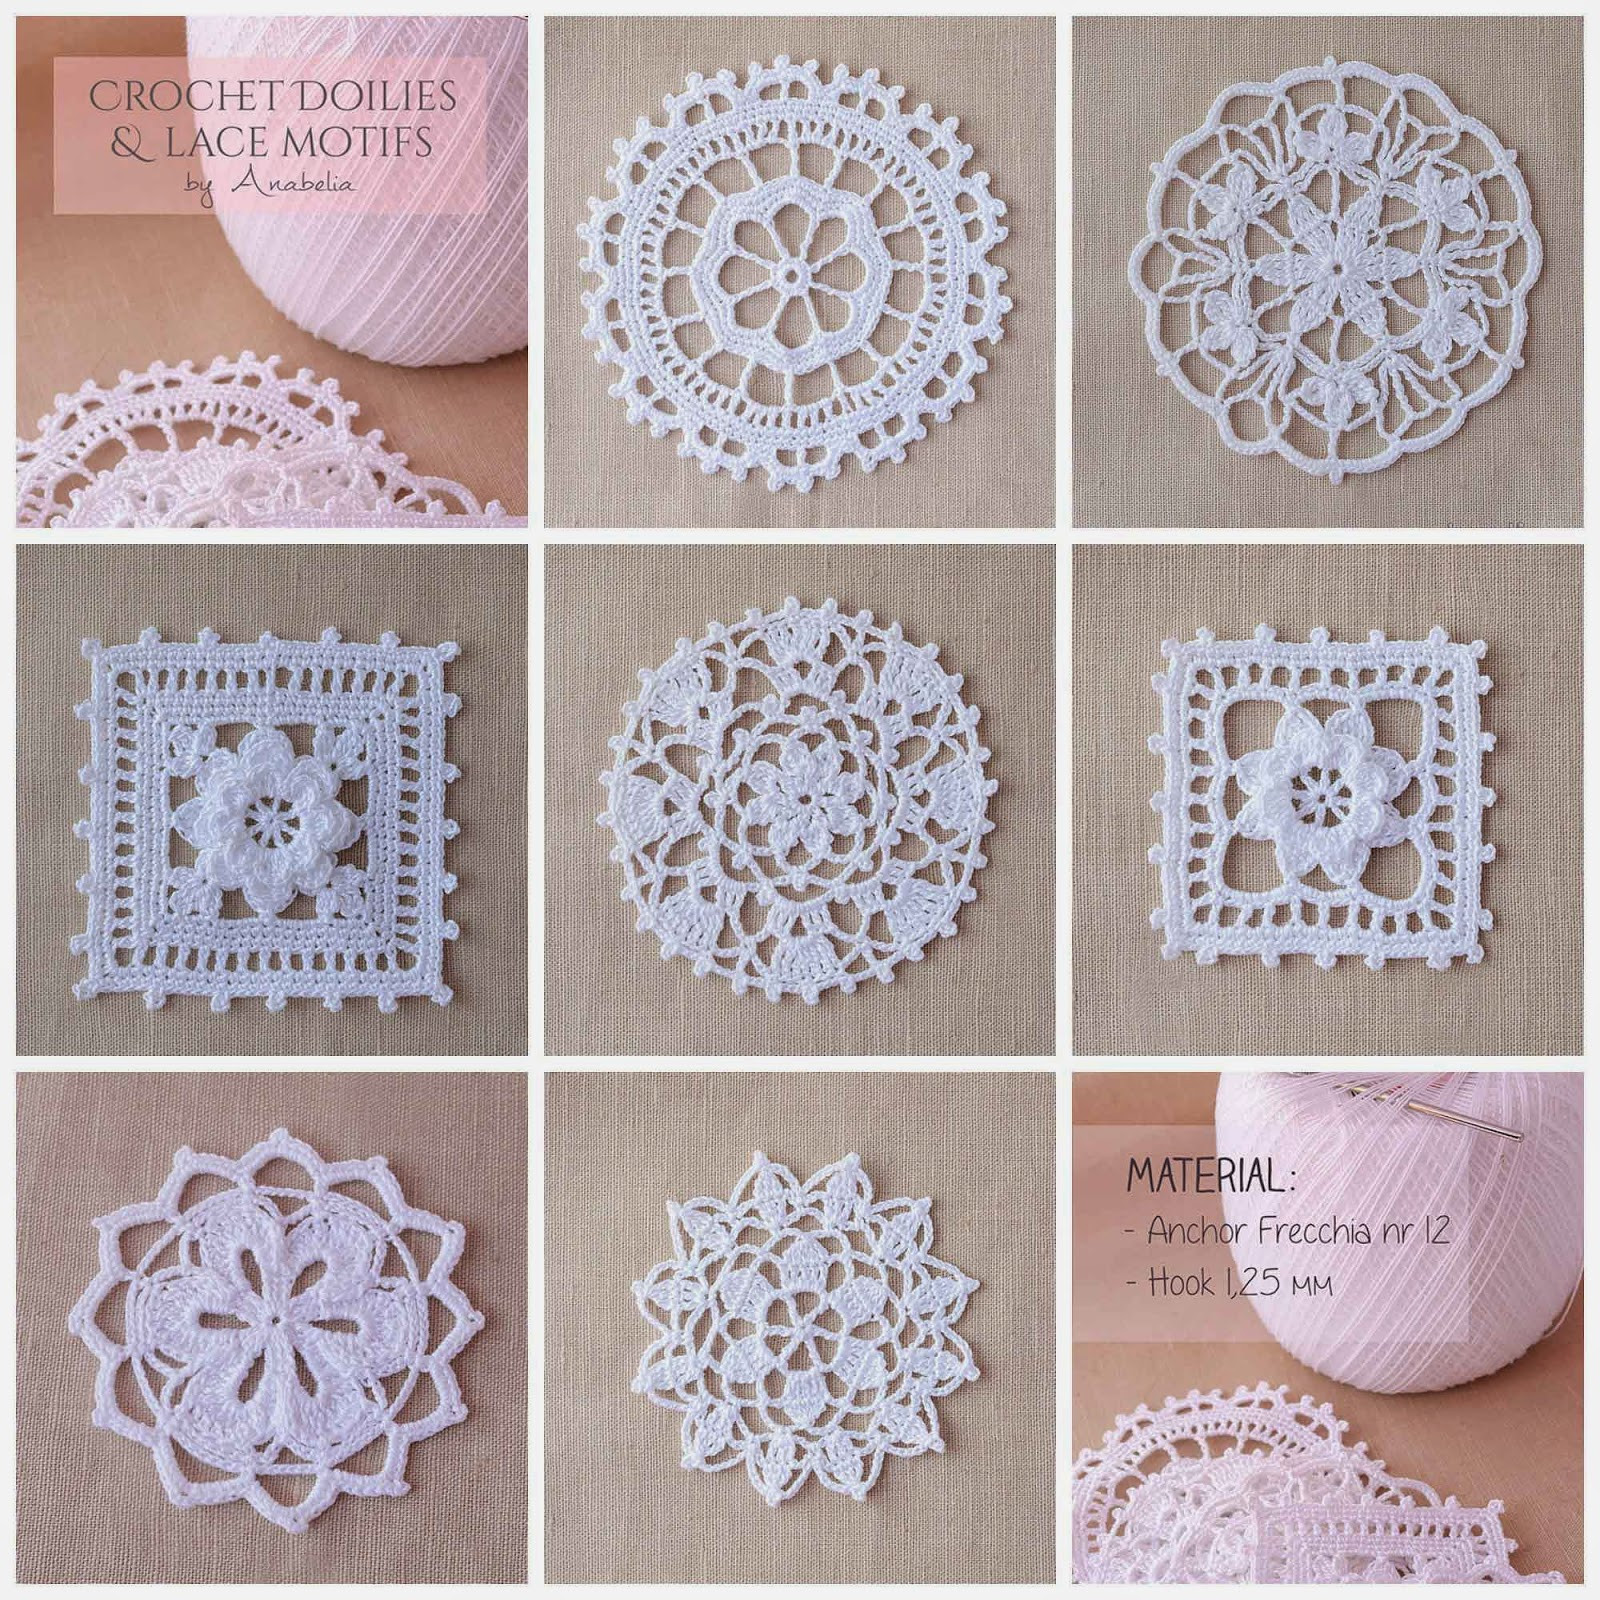 Inspirational Anabelia Craft Design Crochet Doilies and Lace Motifs Crochet Lace Of Amazing 43 Photos Crochet Lace